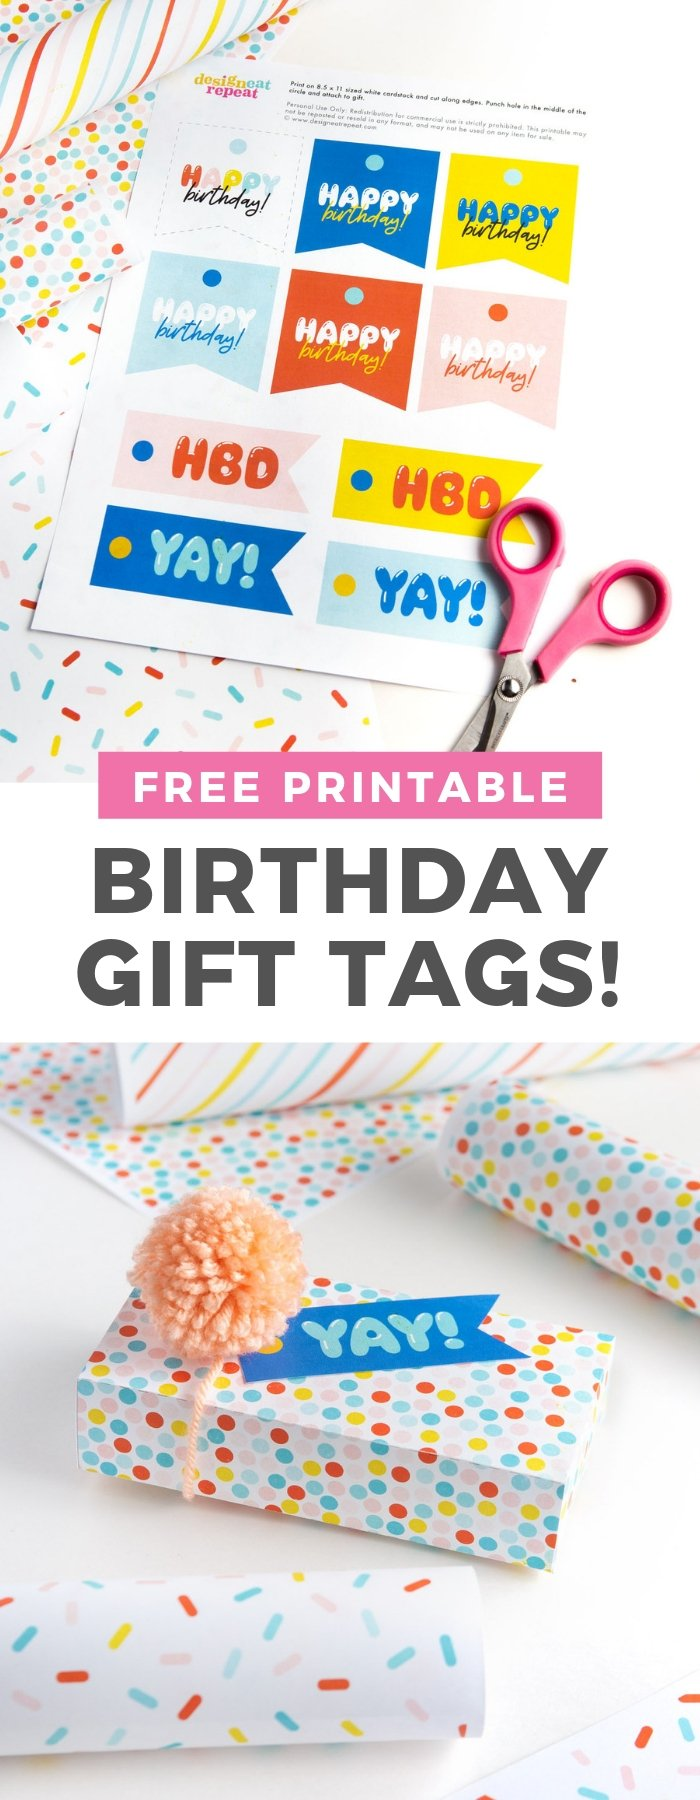 Skip the store and print out these Happy Birthday tags at home...for free! Download and print custom gift tags when you need it with this free pdf! #printable #birthdaypartyideas #gifttags